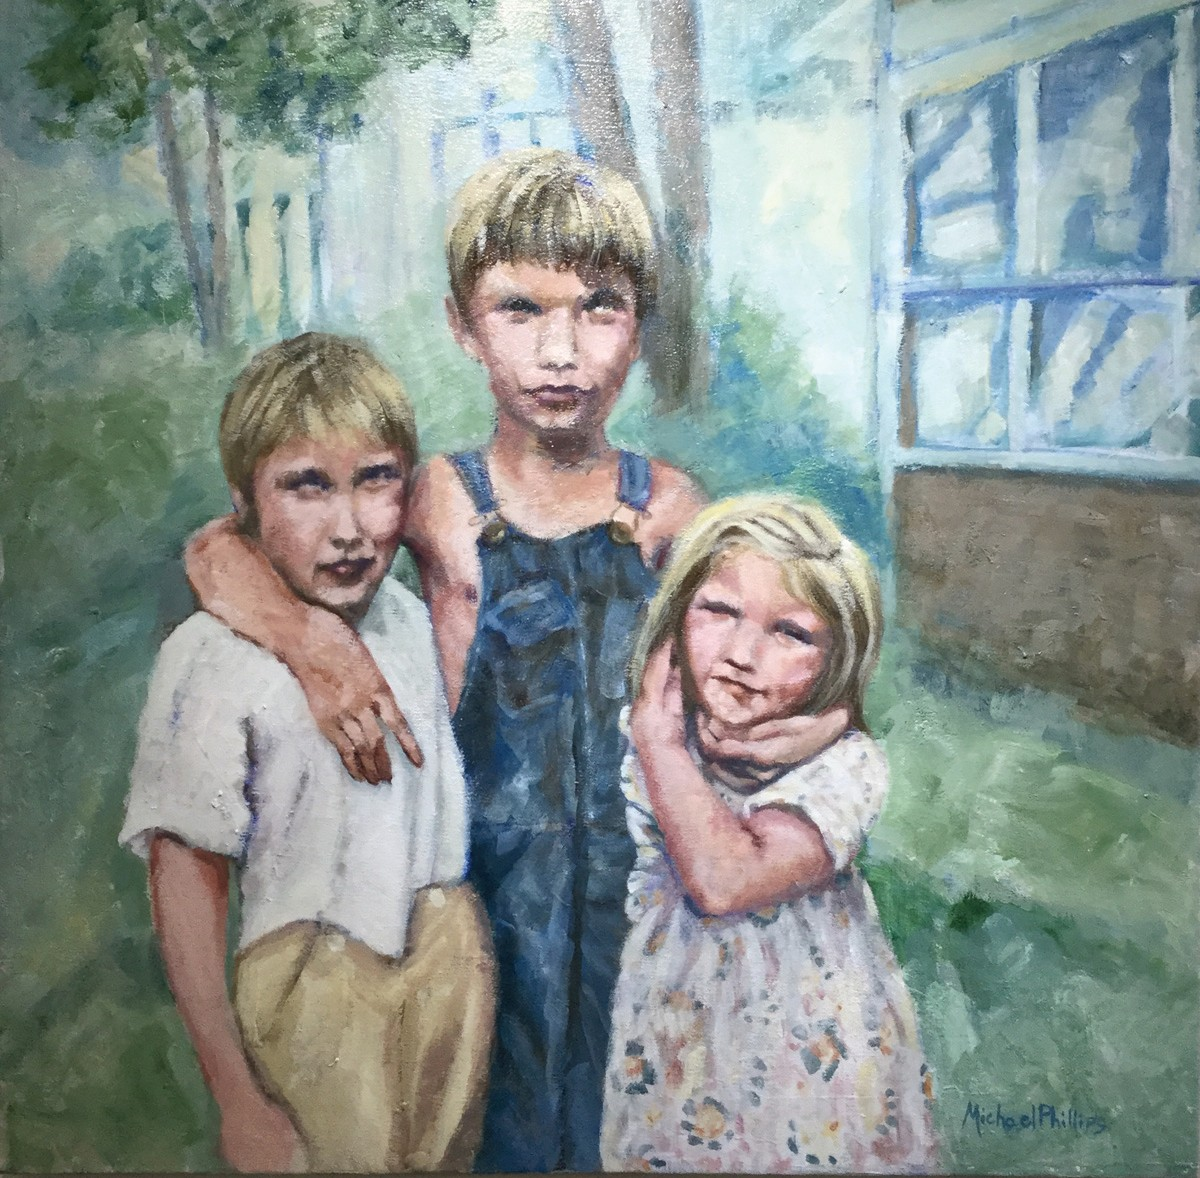 """Left: """"3 Amigos"""" by Michael J. Phillips"""